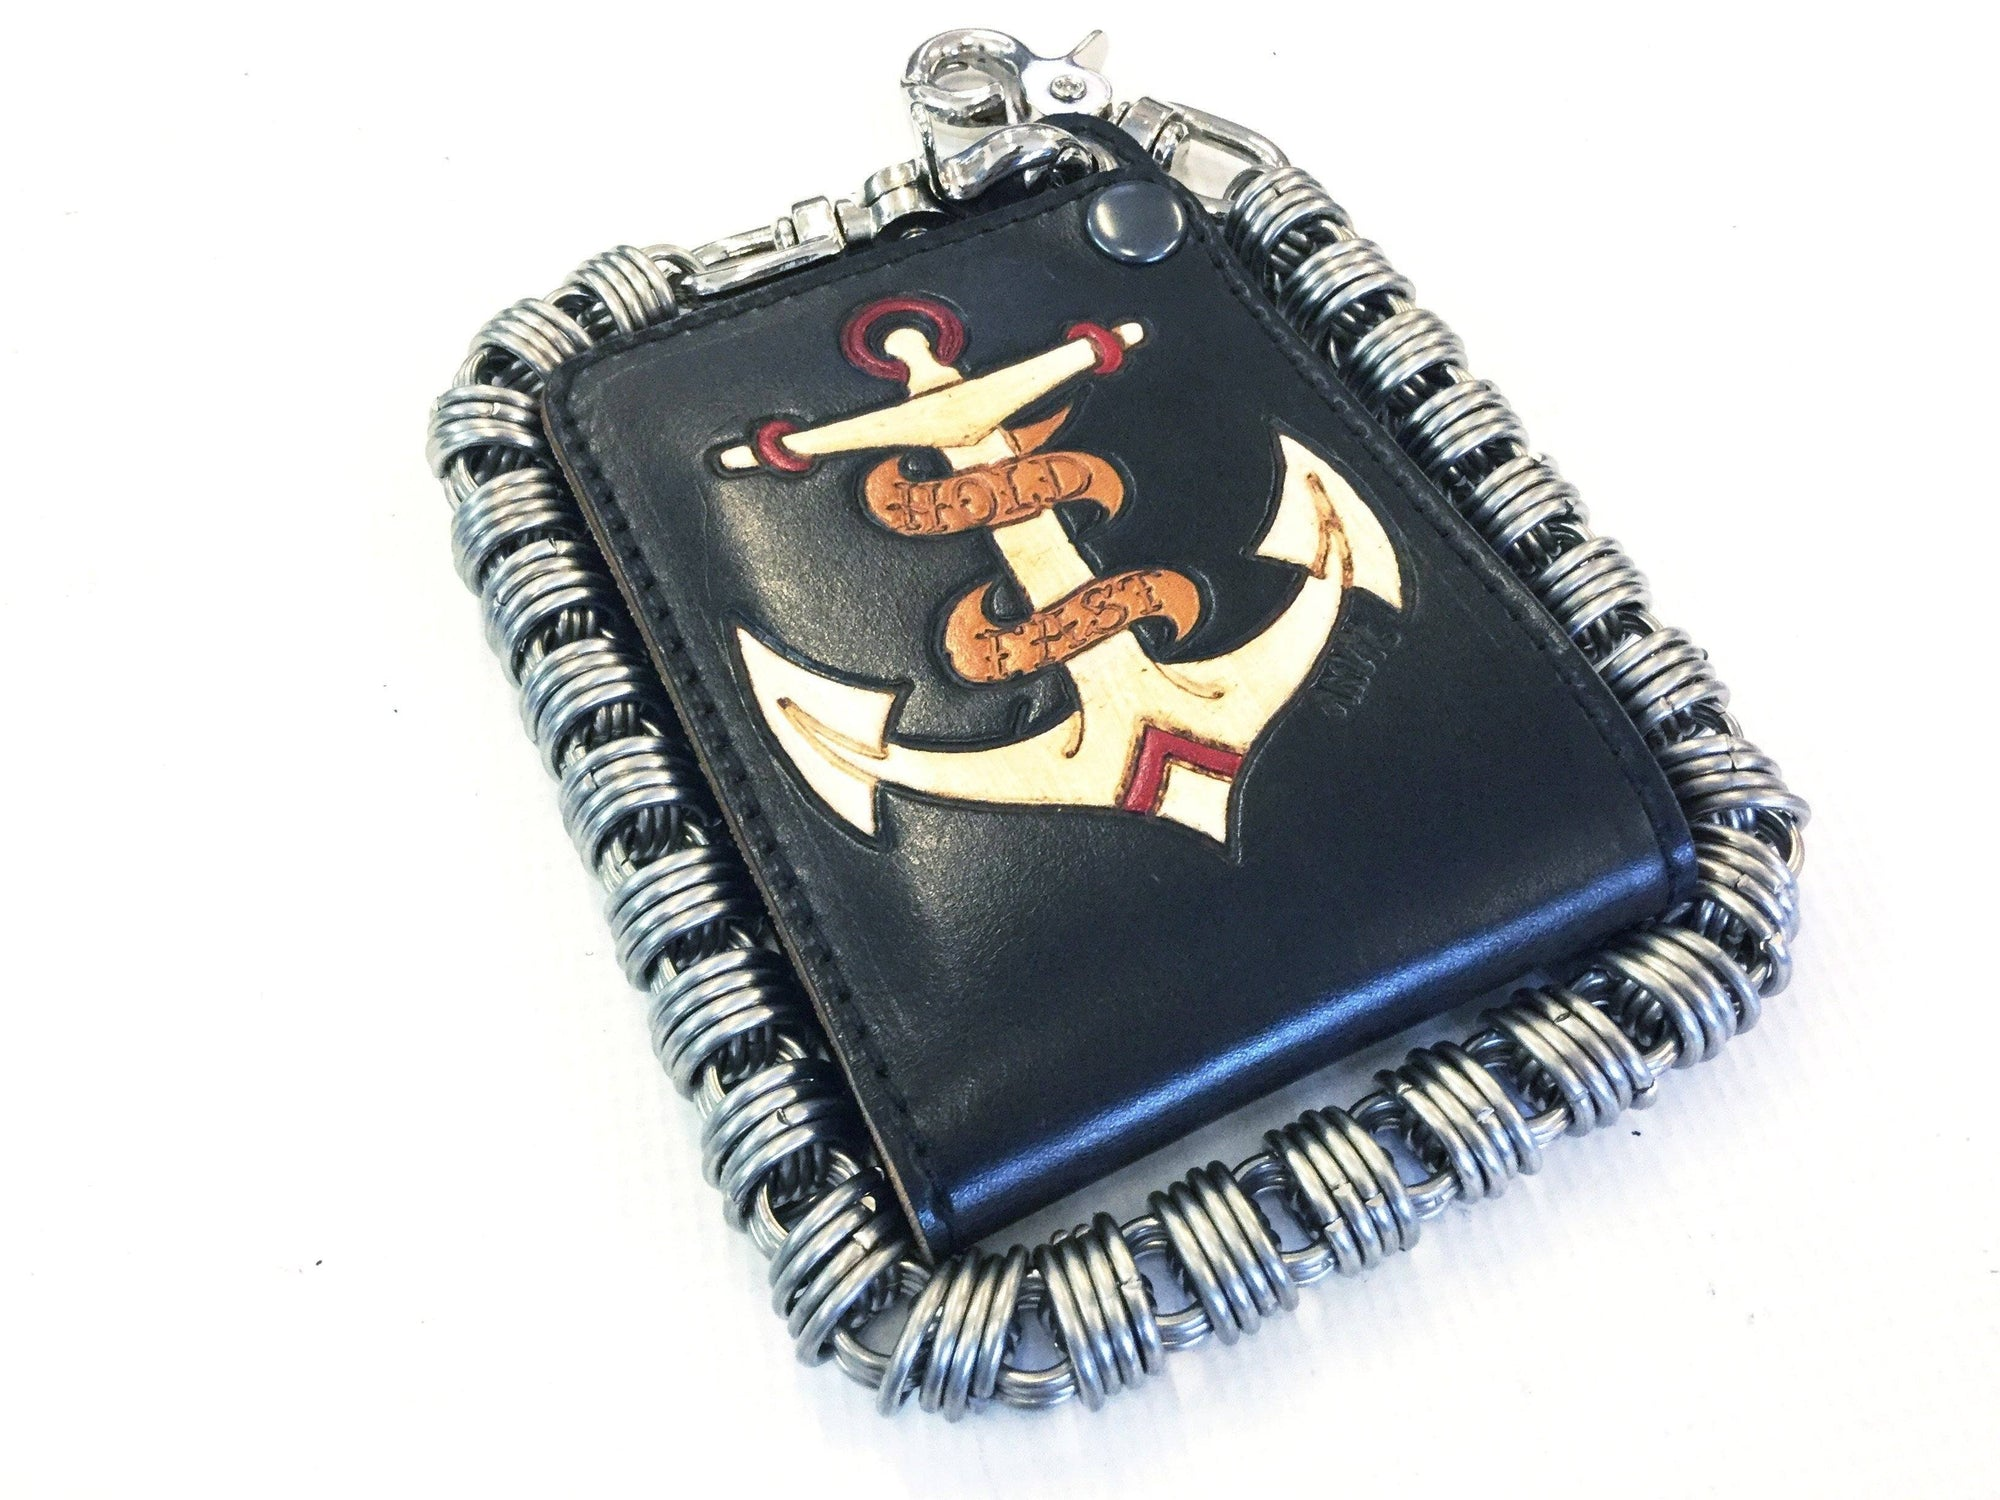 Hand Stained Bifold Leather Chain Wallet - Hold Fast - Anvil Customs